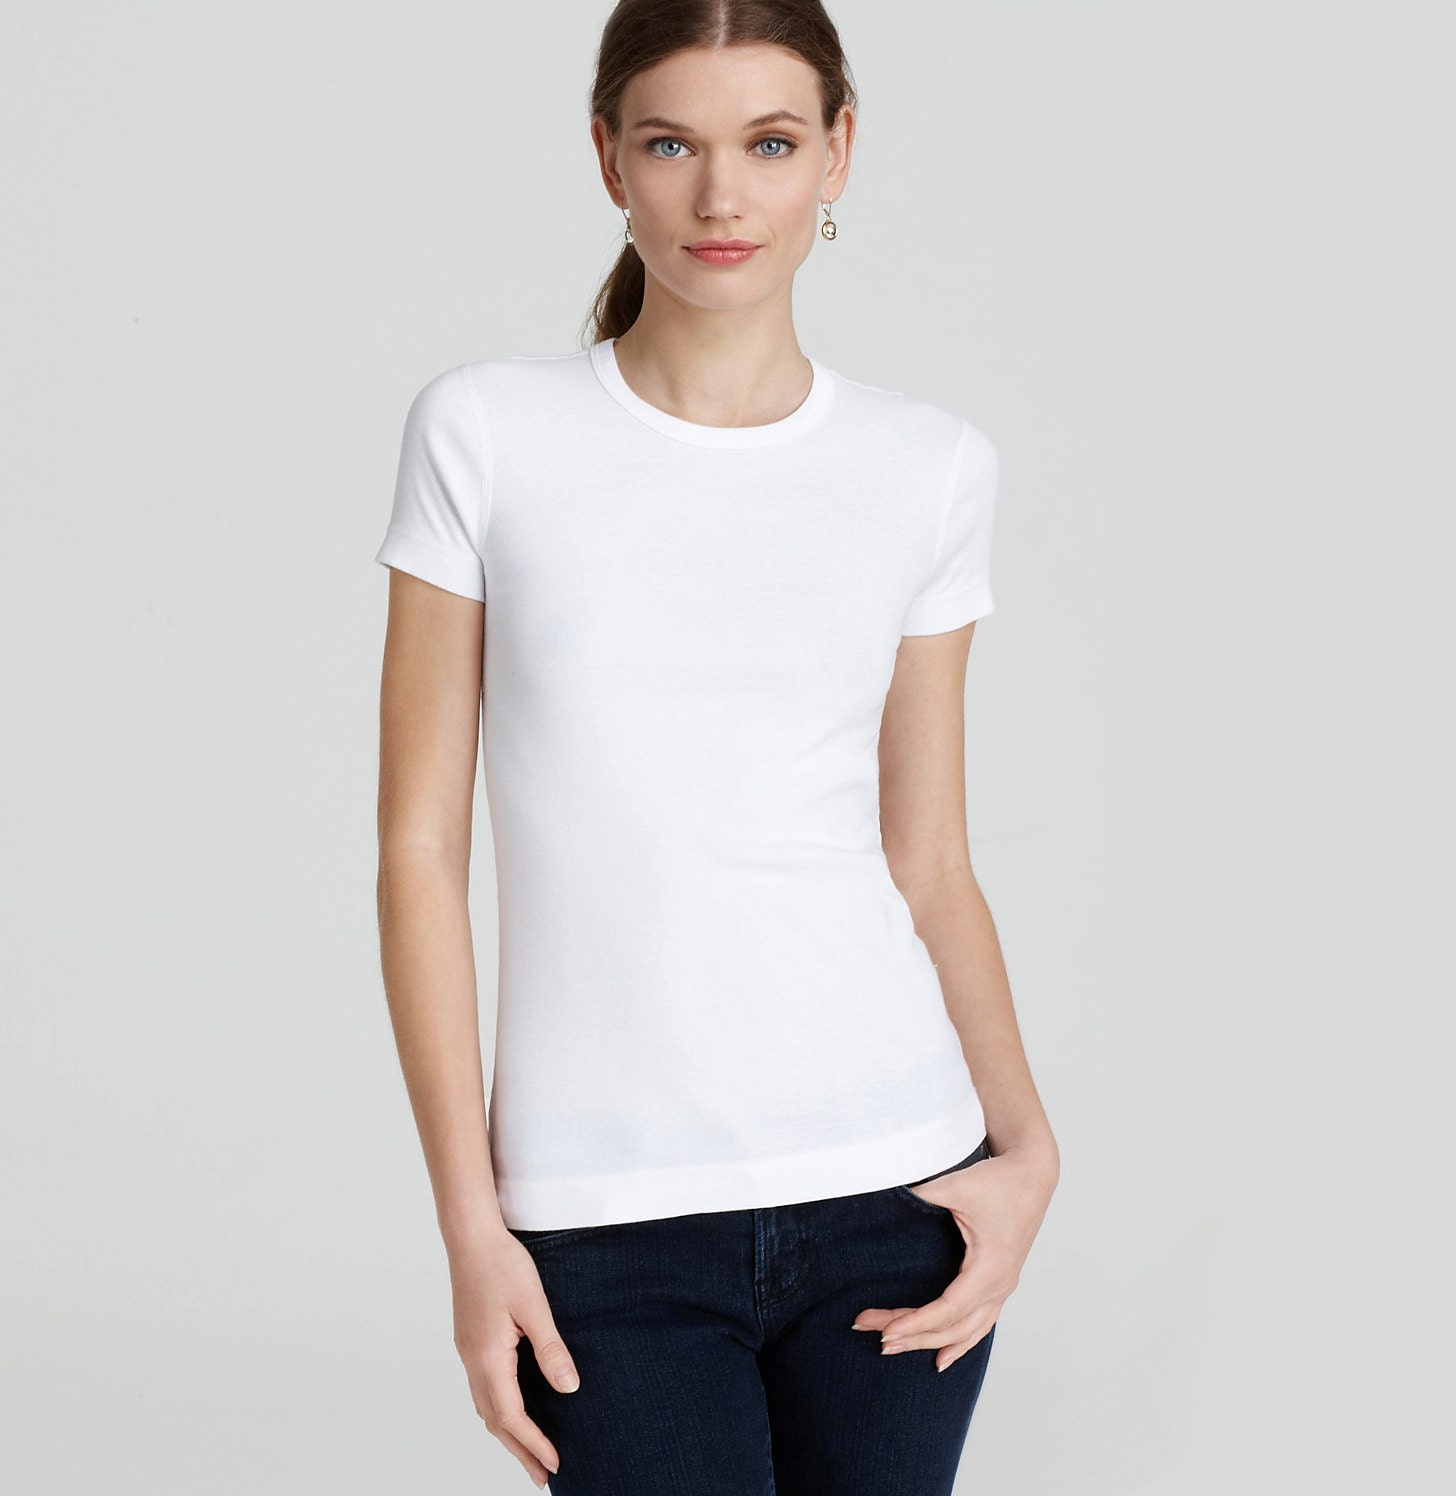 White top slim white tshirt white yoga top running shirt for Who makes the best white t shirts